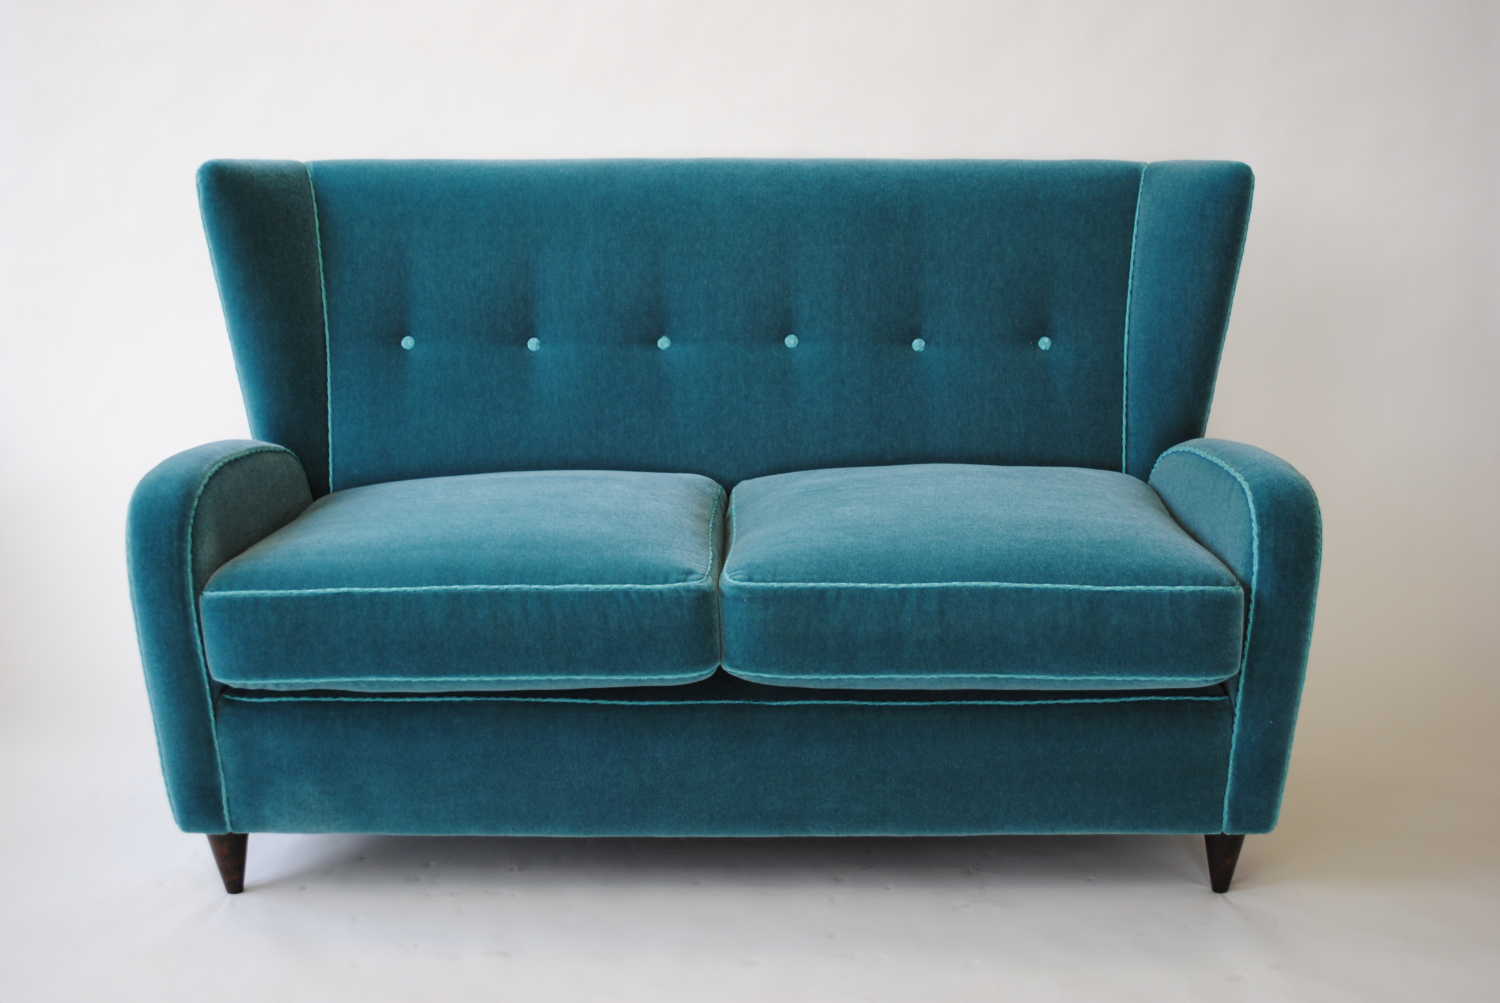 Mohair velvet sofa by Paulo Buffa